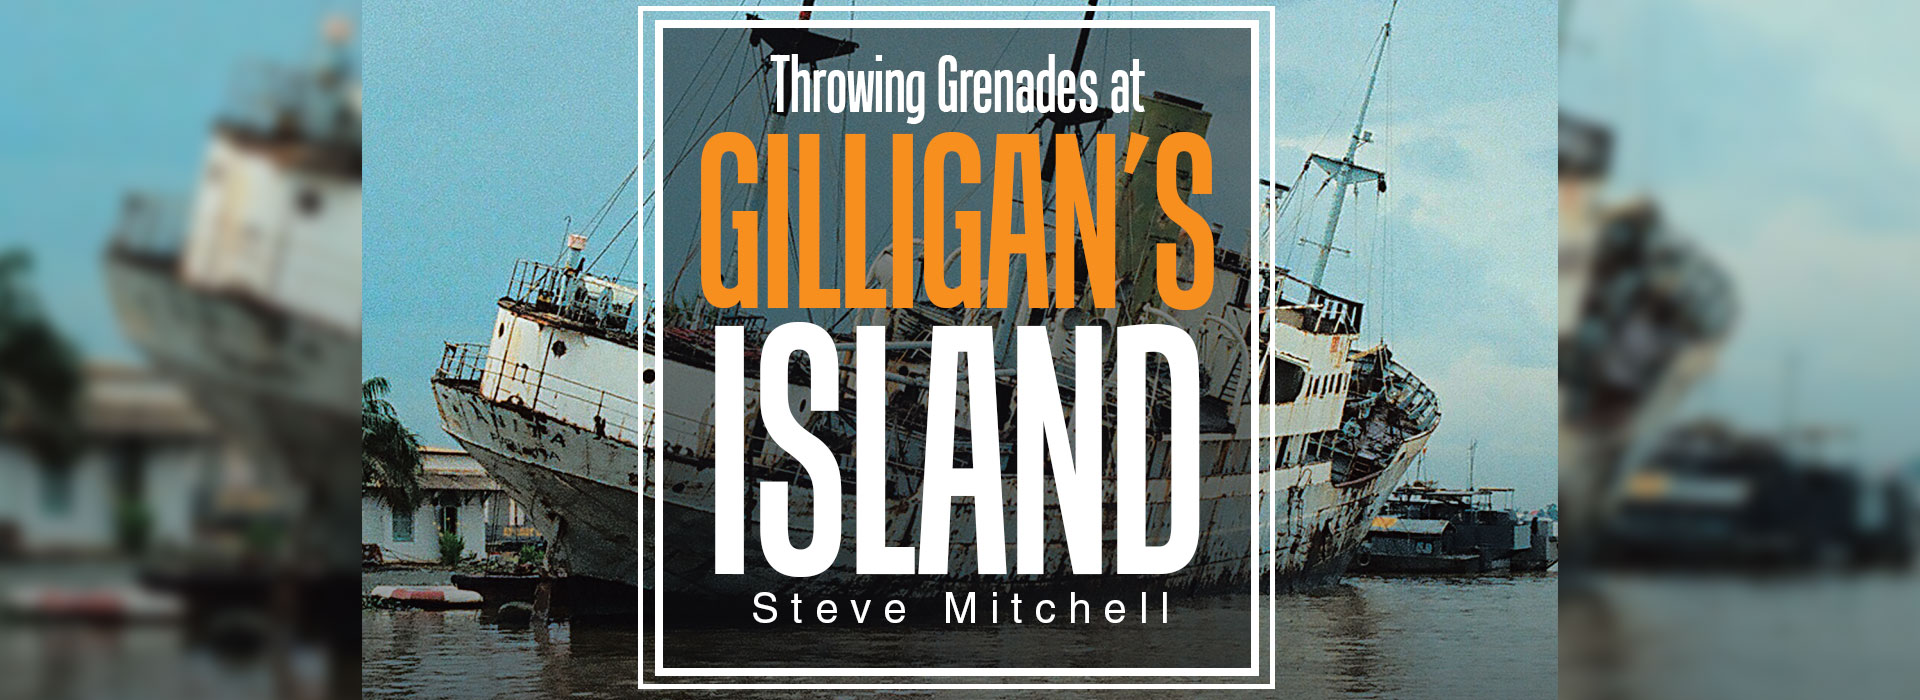 Throwing Grenades at Gilligan's Island